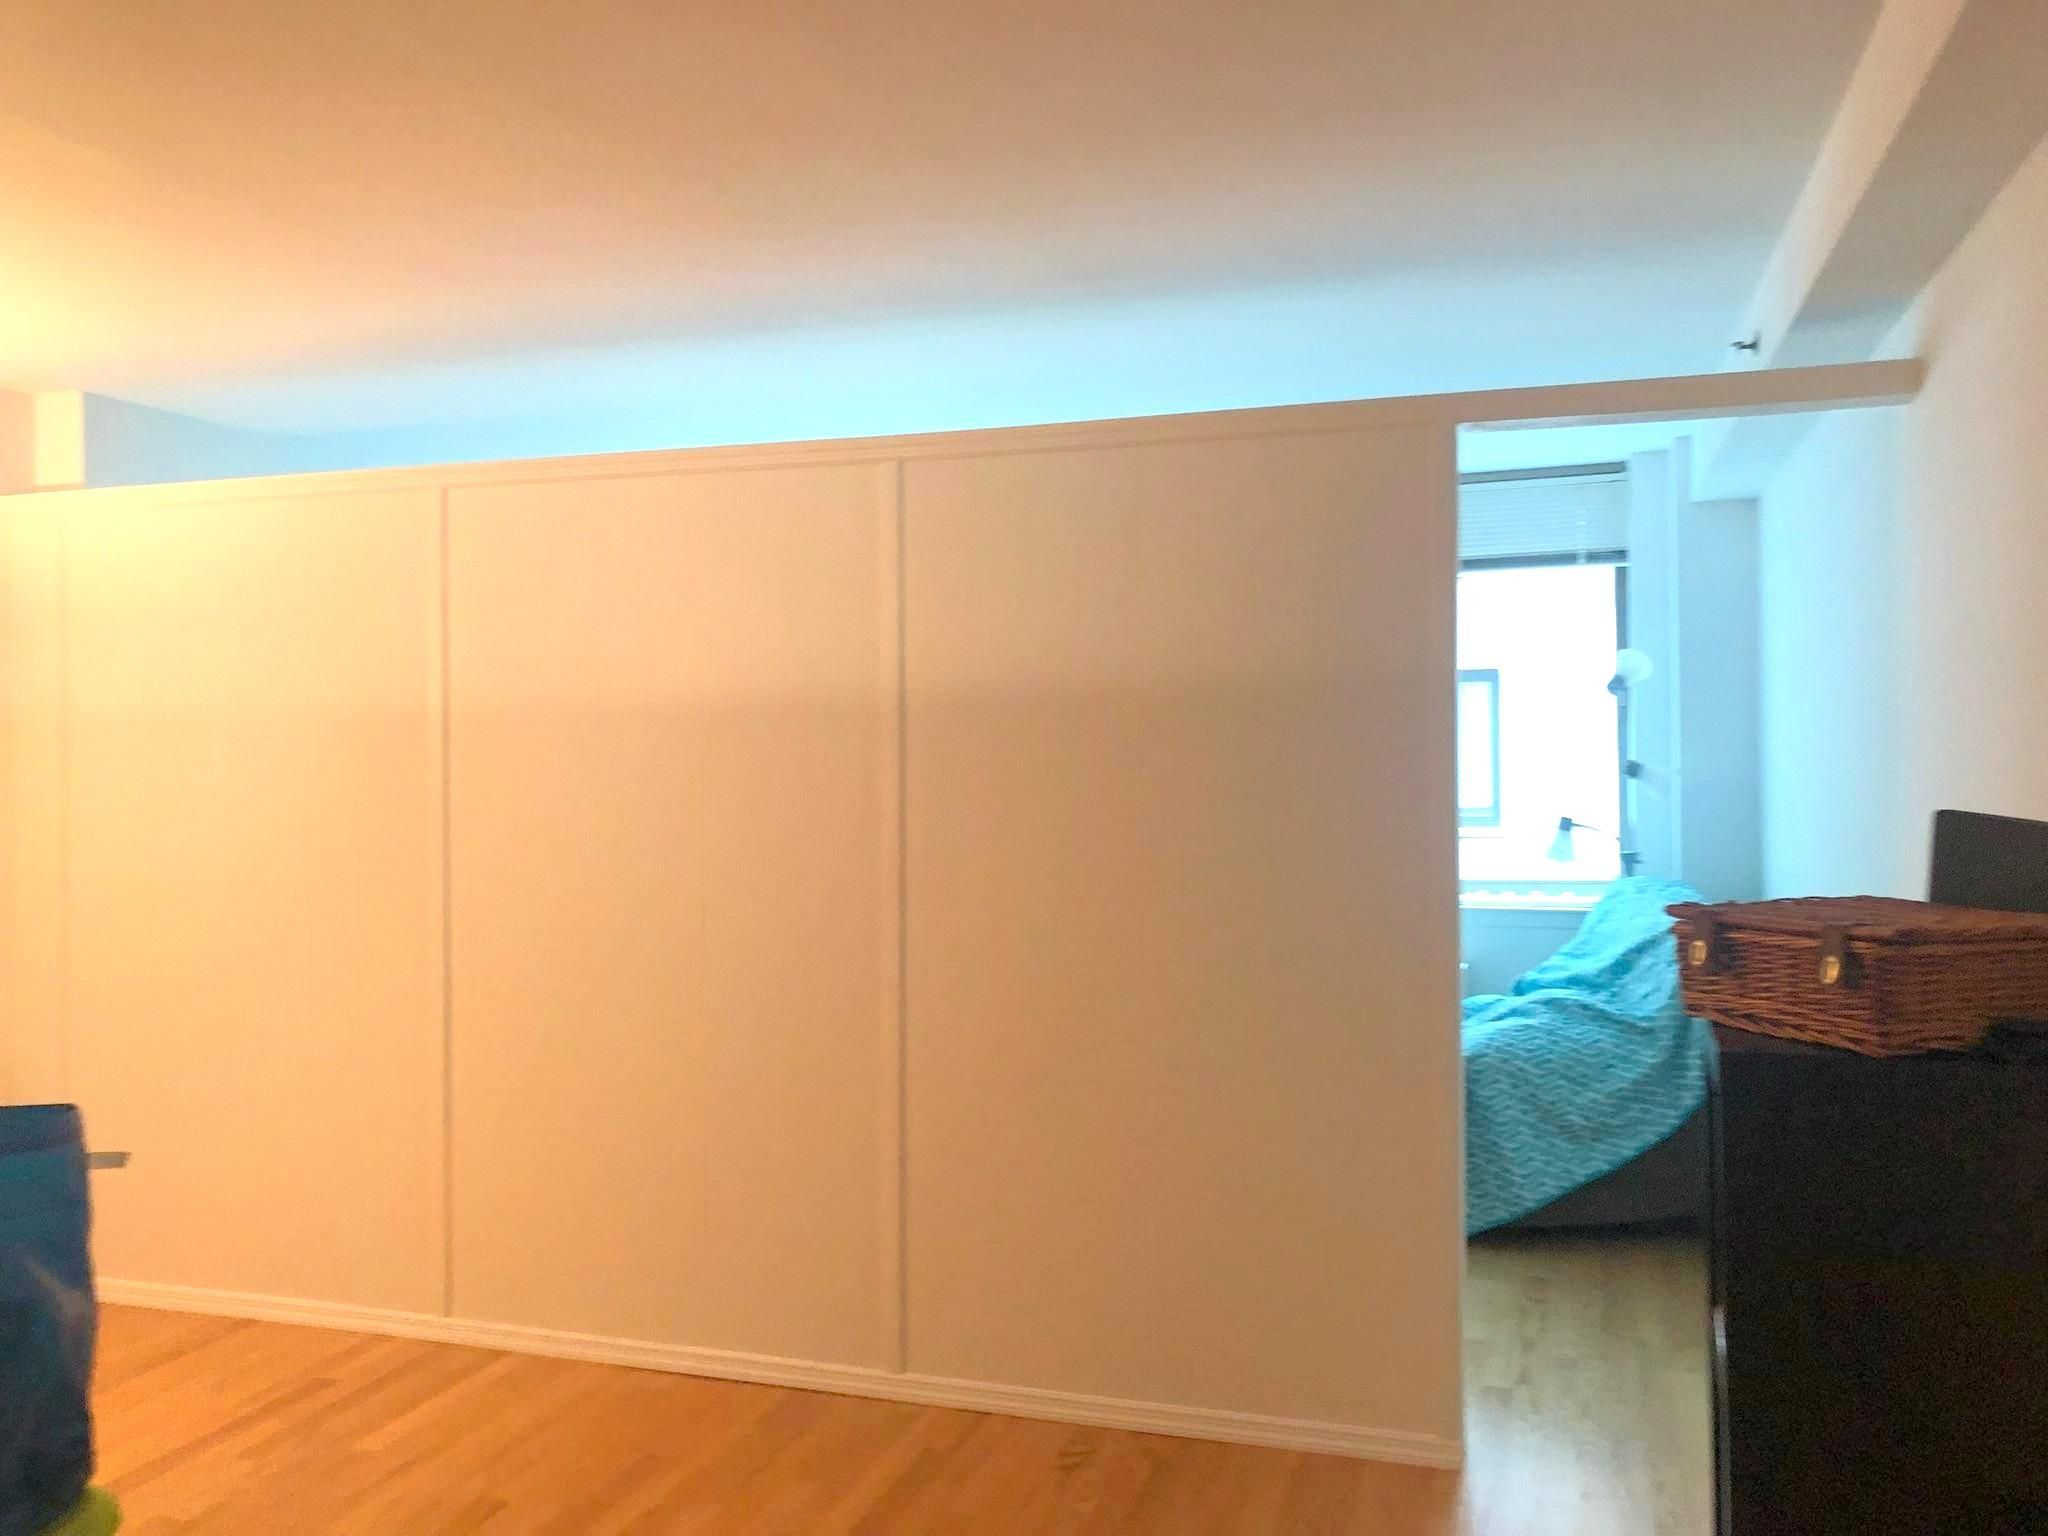 Standard Temporary Apartment Wall Call Us For All Your Custom Room Partition And Storage Wall Inquir Temporary Wall Divider Room Divider Walls Apartment Walls